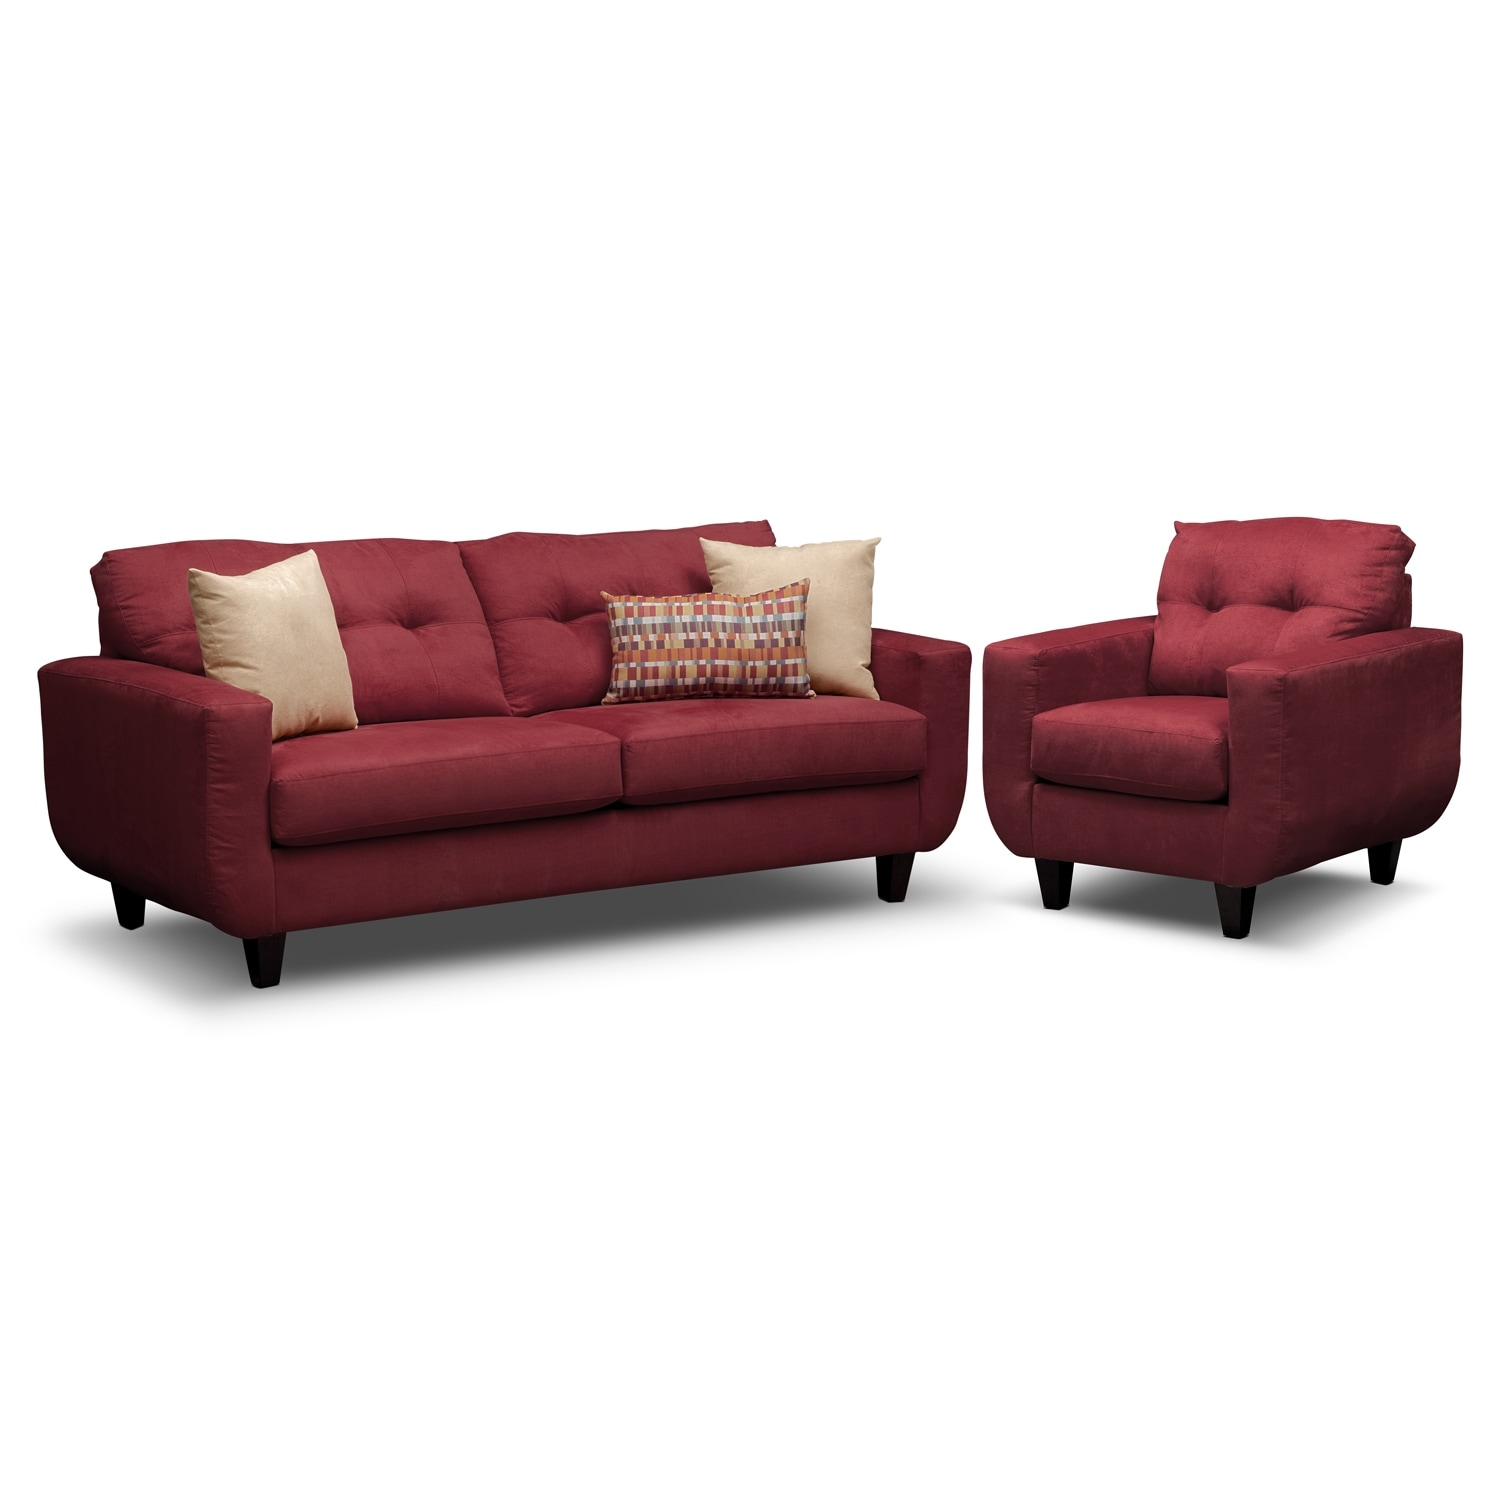 Living Room Furniture - West Village Red 2 Pc. Living Room w/Chair